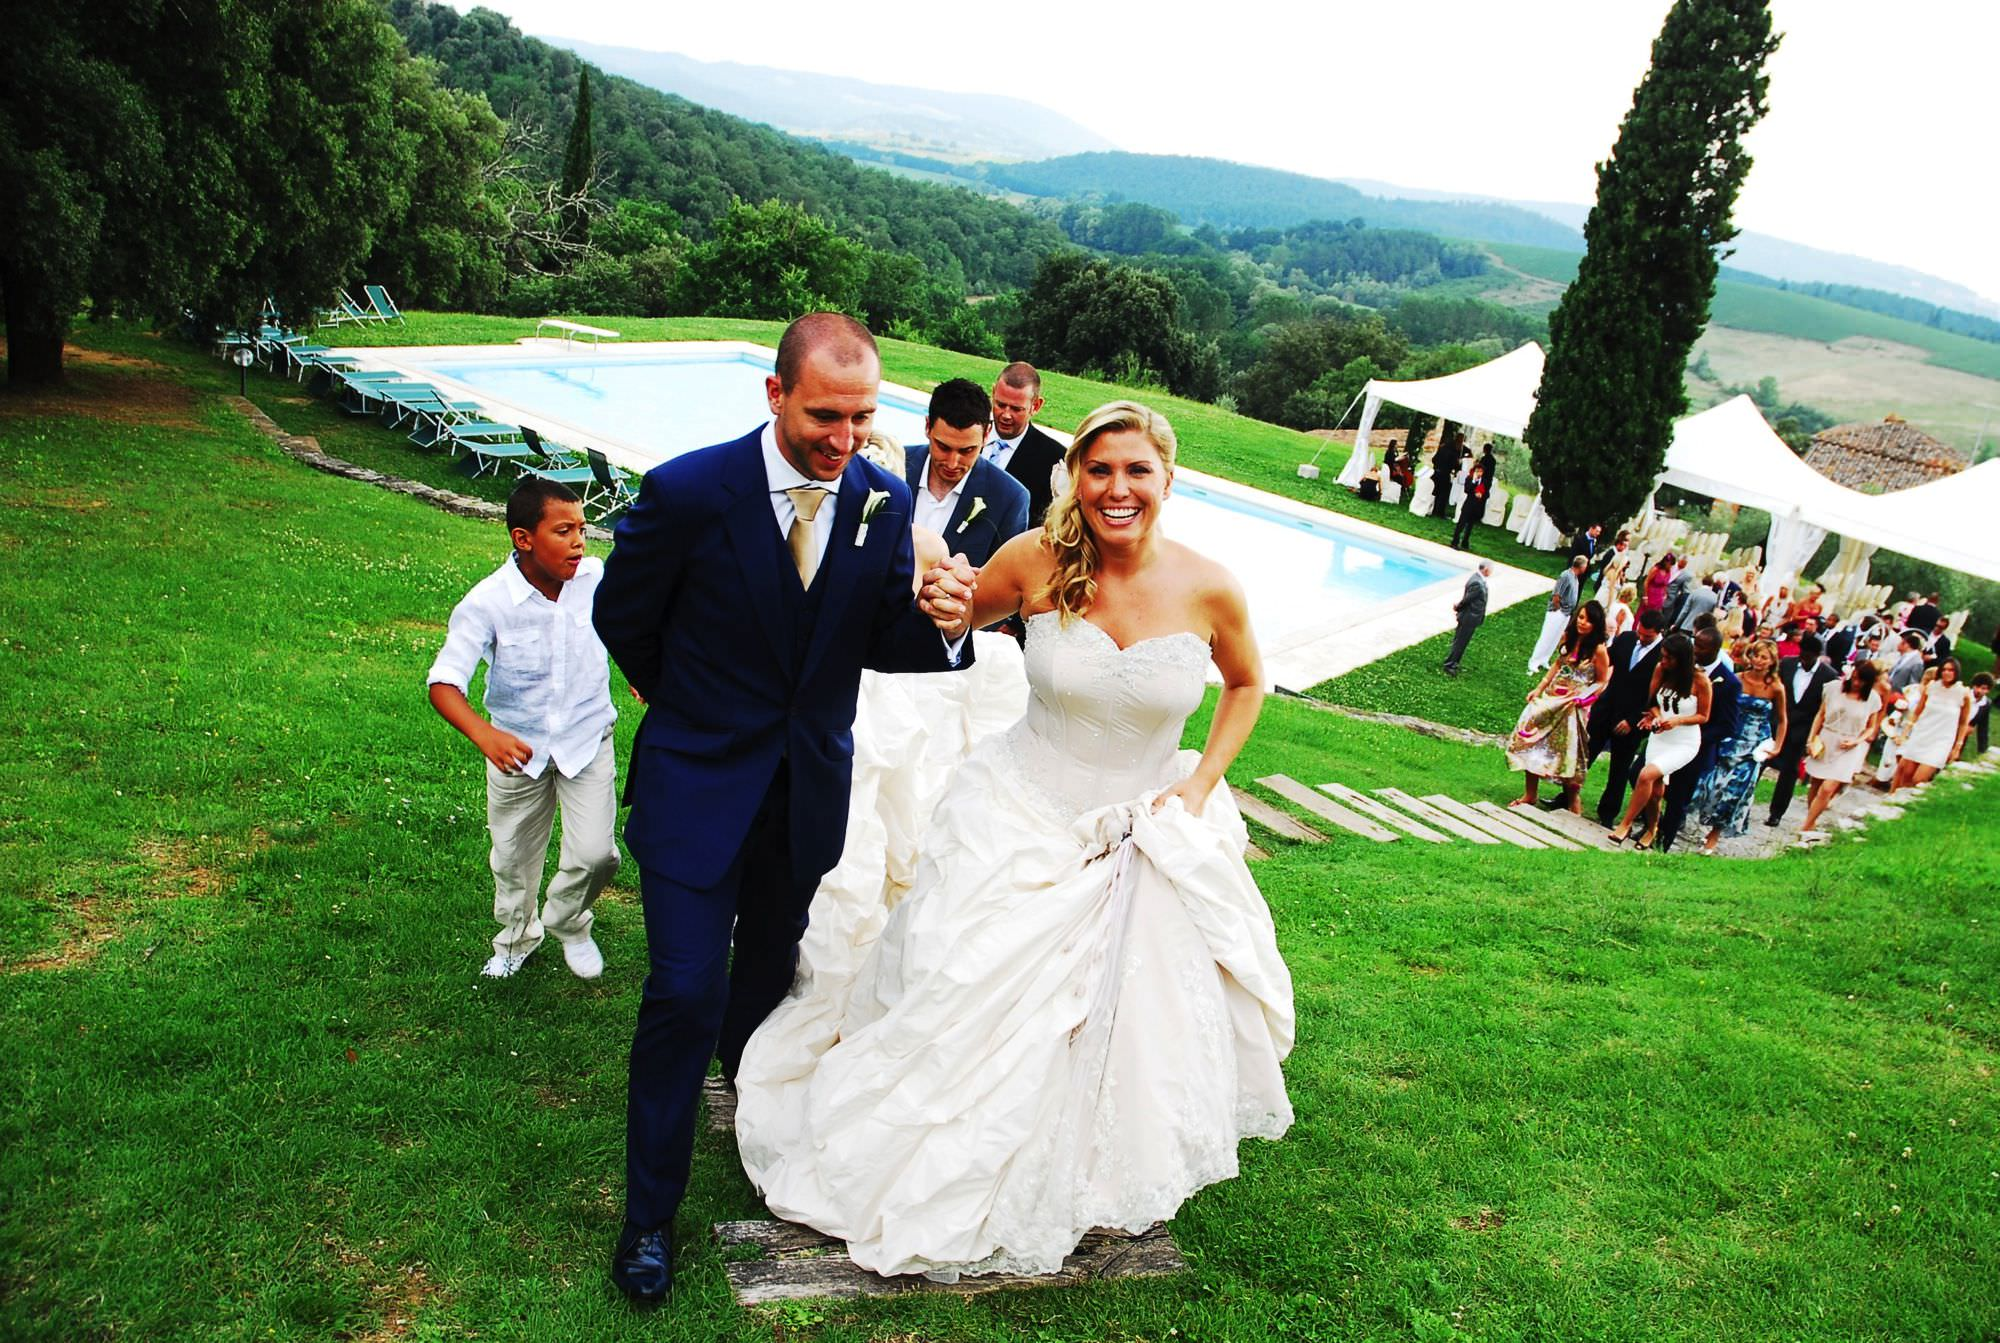 weddings at modanella castle